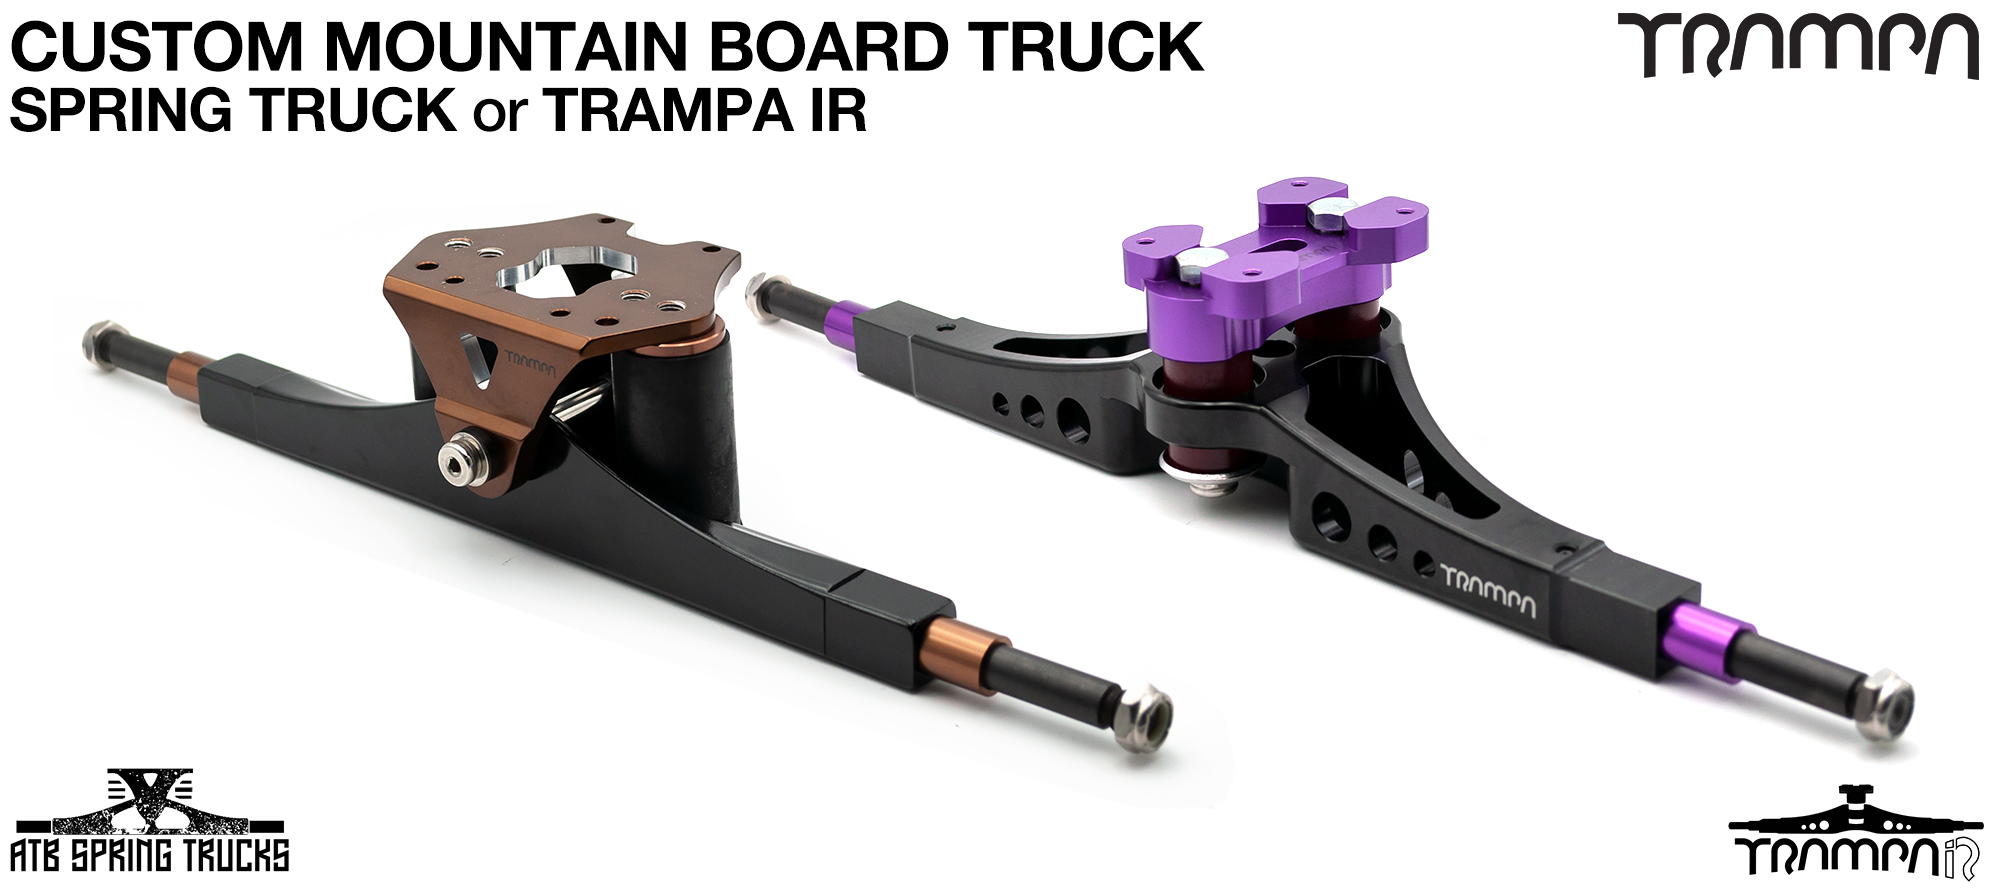 Custom Mountainboard Truck CNC Precision made 16 or 17 Inch wide Mountainboard Trucks 'Channel Style (Spring) or 'Double King-Pinned' (Skate) Style